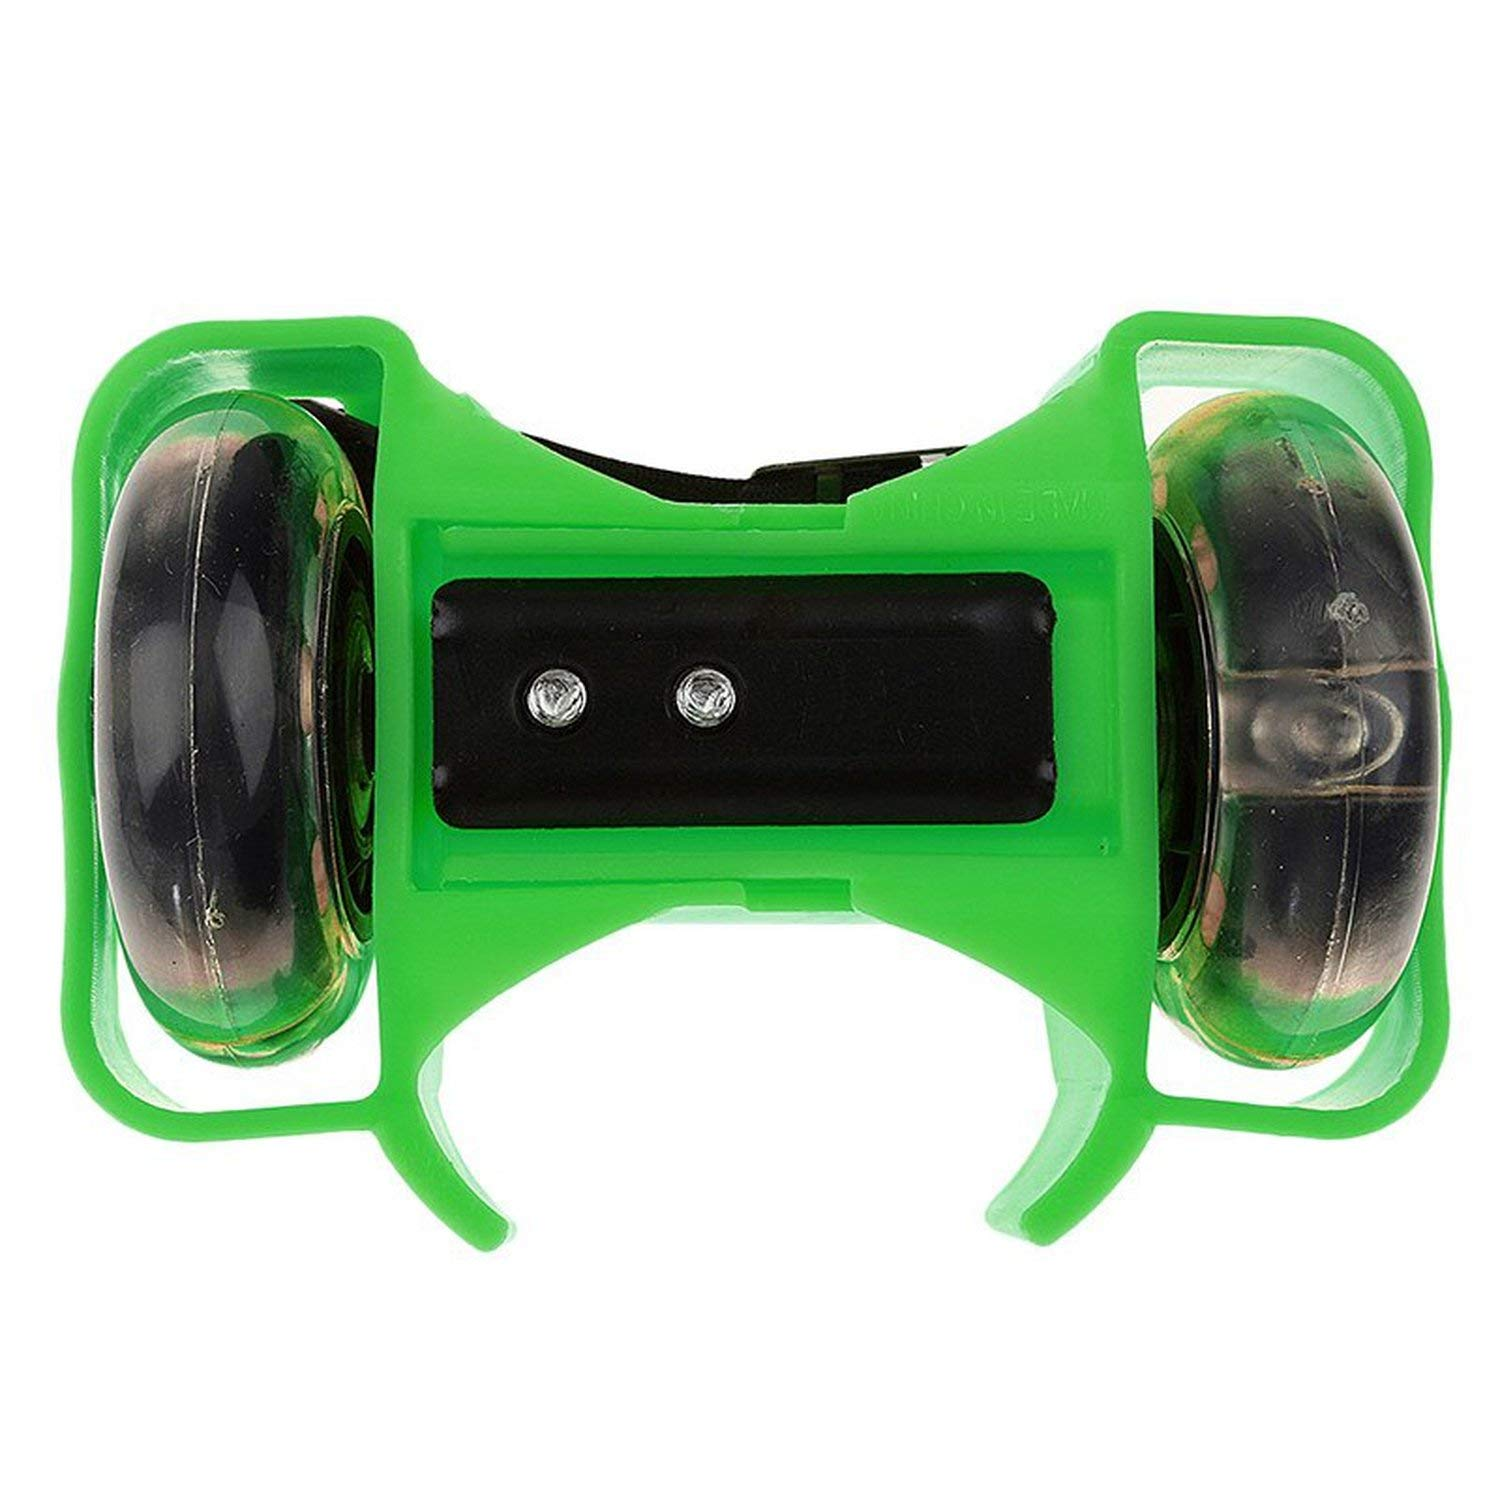 From Zero Skates 5-Colors Light Flashing Roller Small Whirlwind Pulley Adjustable Simply Roller Skating Shoes with Dual Wheels for Children New,Green